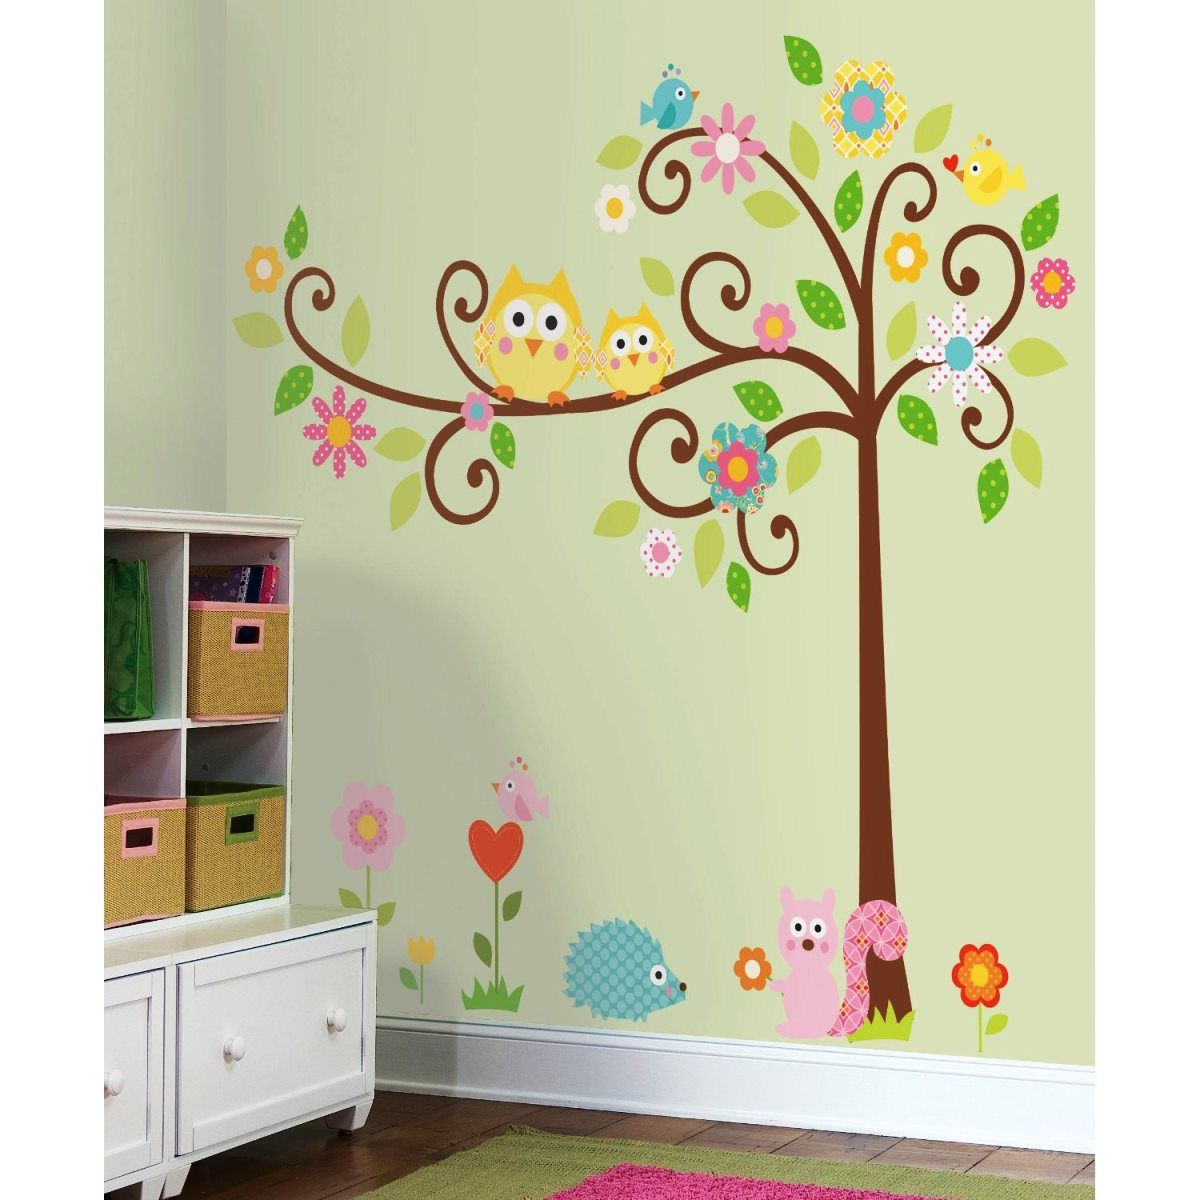 Magnificent Diy Nursery Wall Decor Ideas Gallery - The Wall Art ...